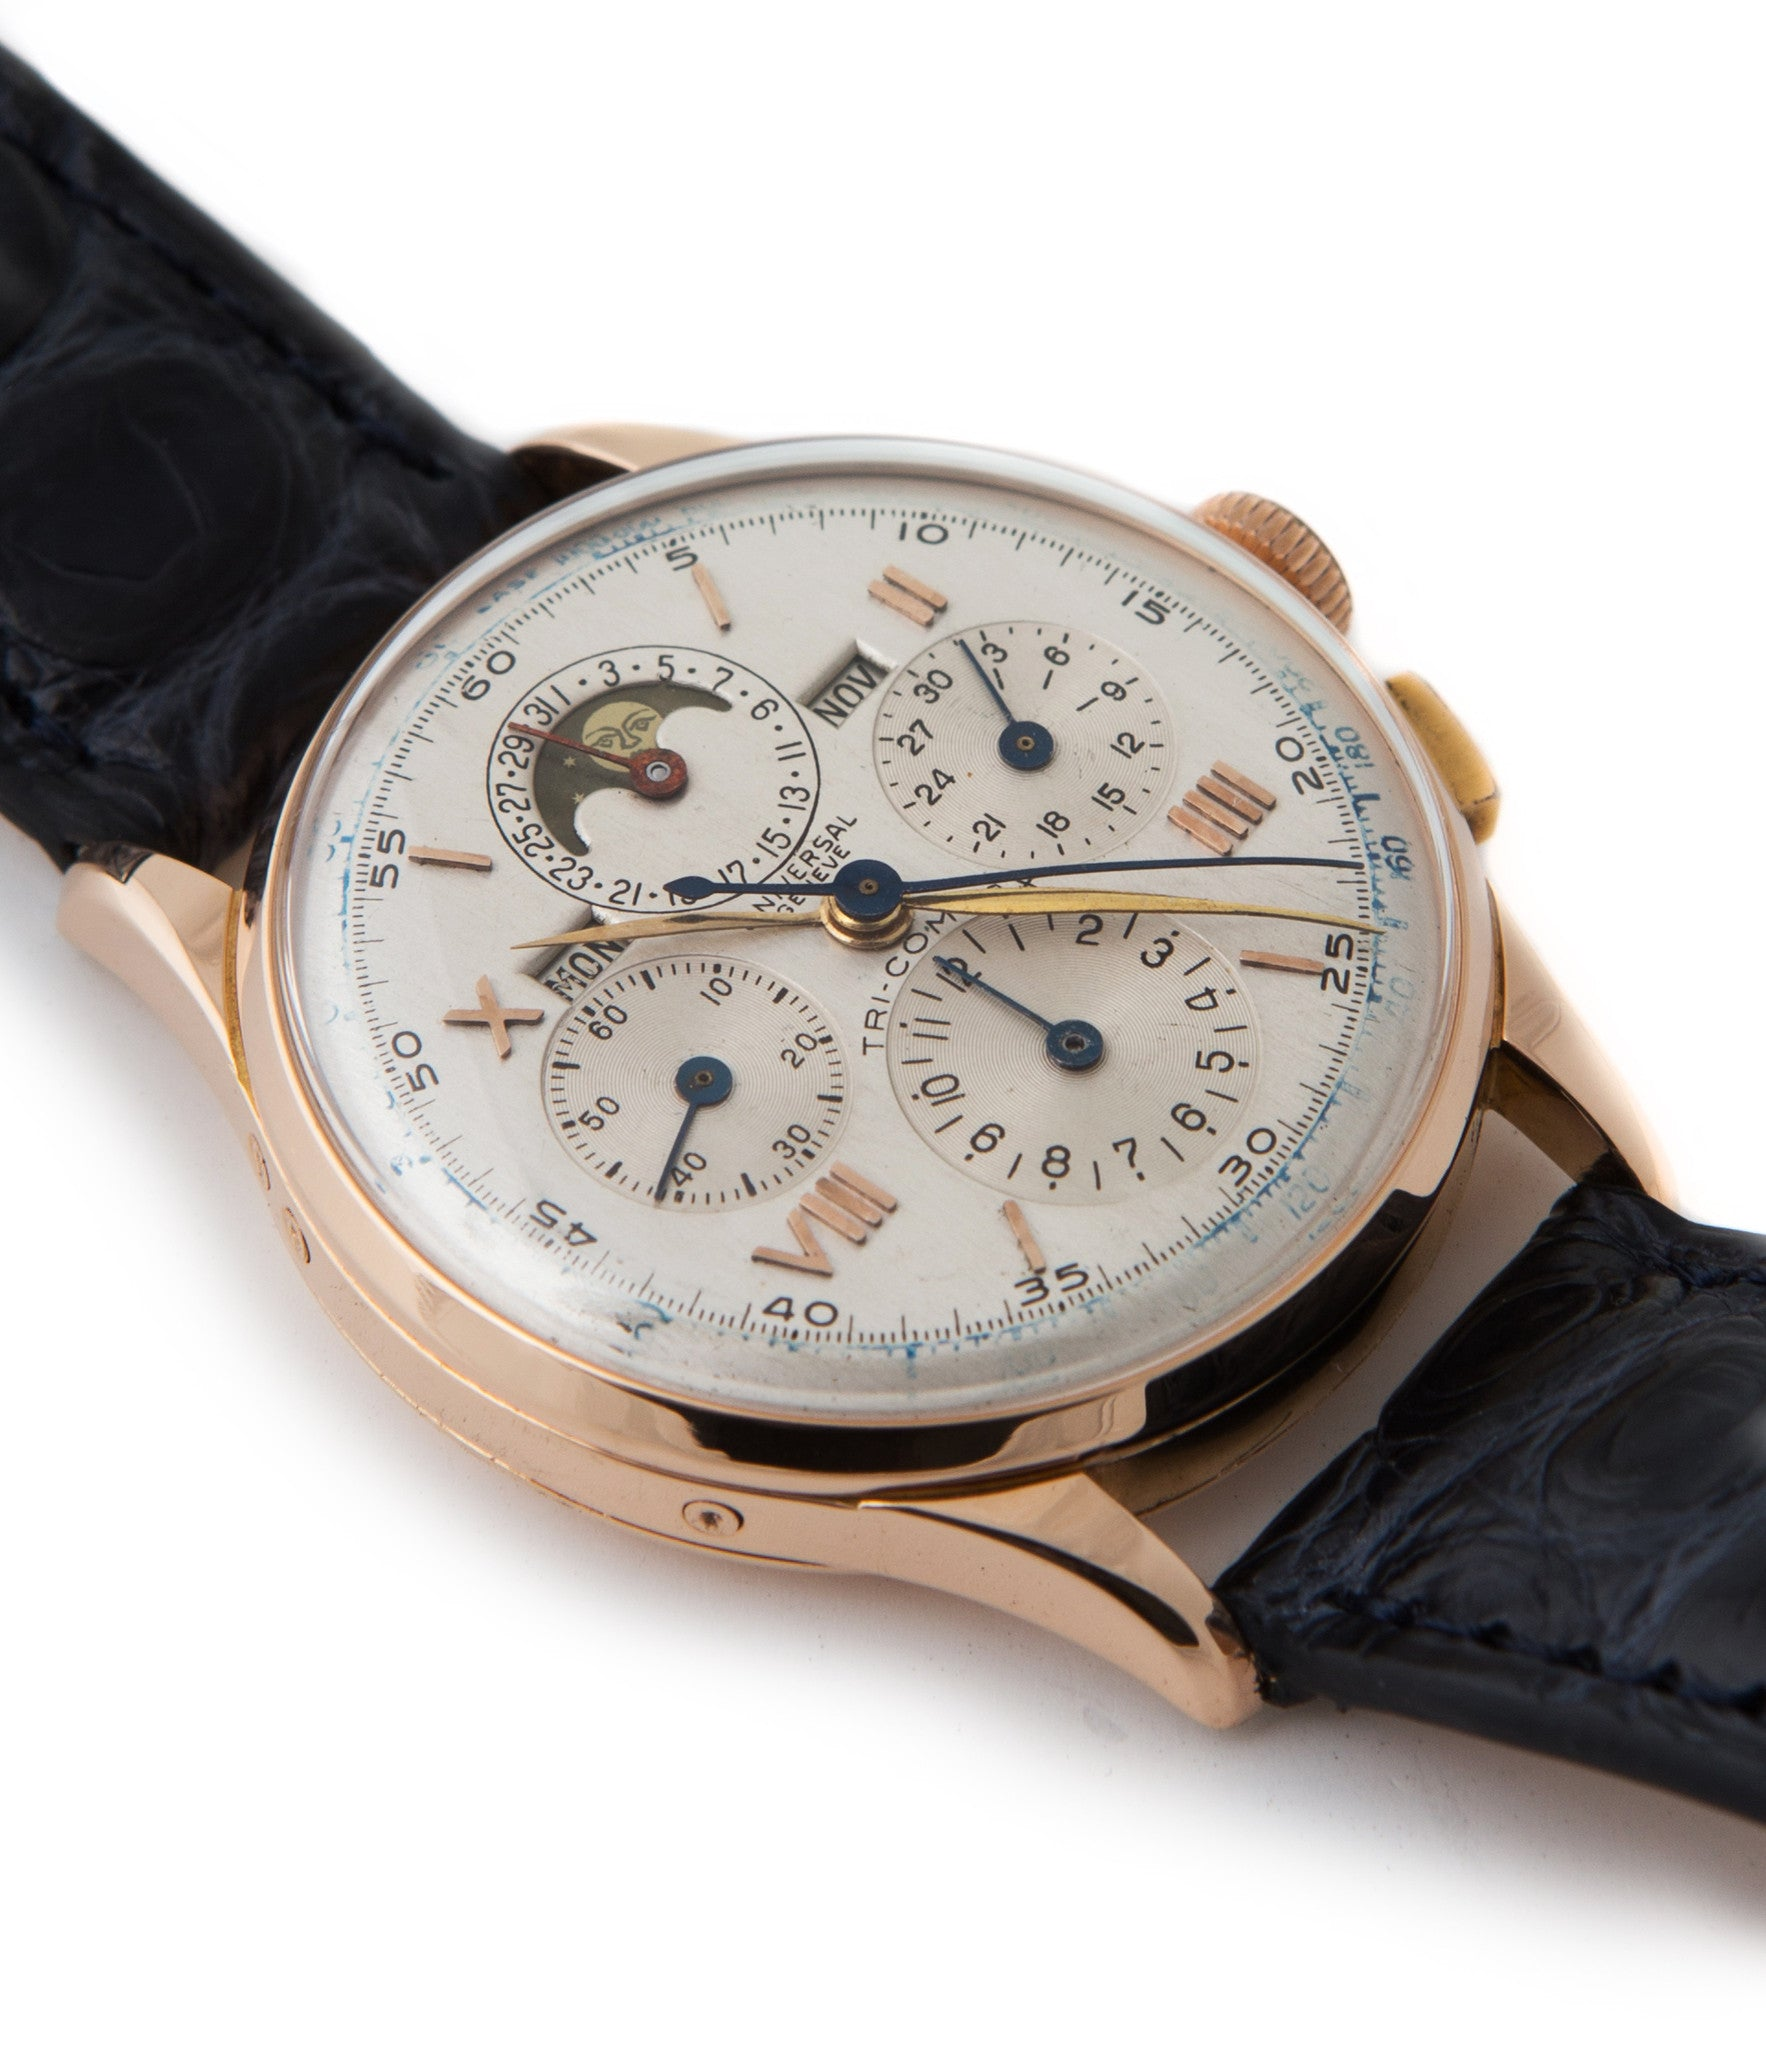 Universal Genève Tri-Compax Triple Calendar Chronograph 12264 rose gold manual-winding Cal. 481 vintage authentic pre-owned dress, rare luxury watch from circa 1942 with silver dial and brown alligator strap with month, moonphase, date, weekday, chronograph, tachymeter, hours, minutes, small seconds